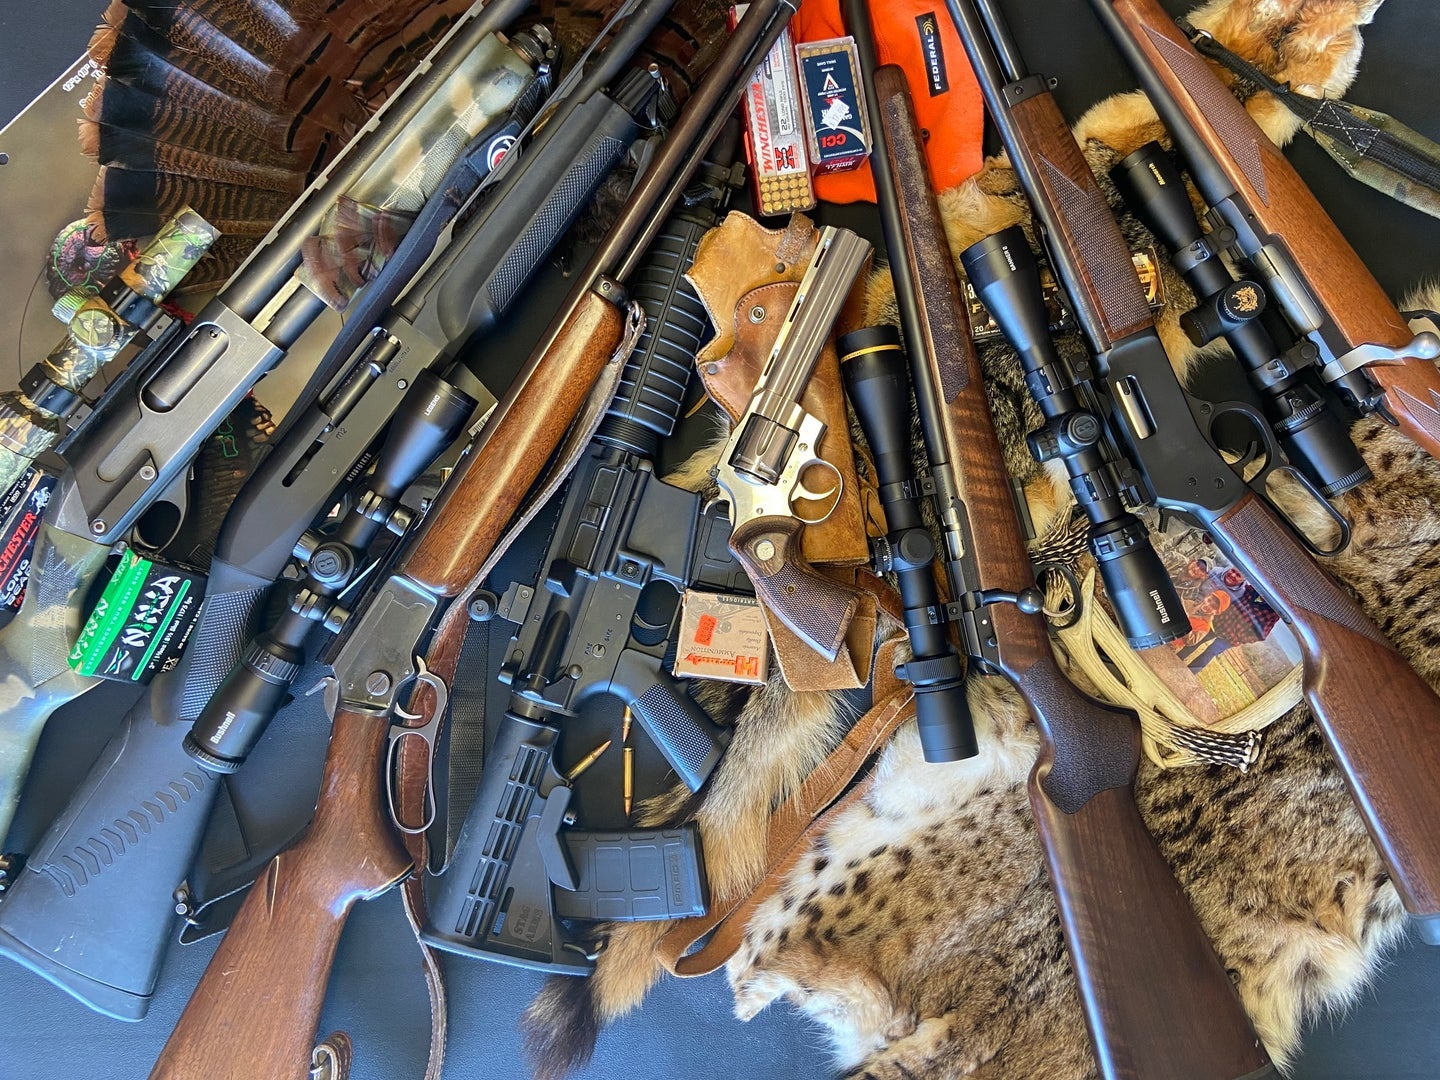 A collection of hunting guns